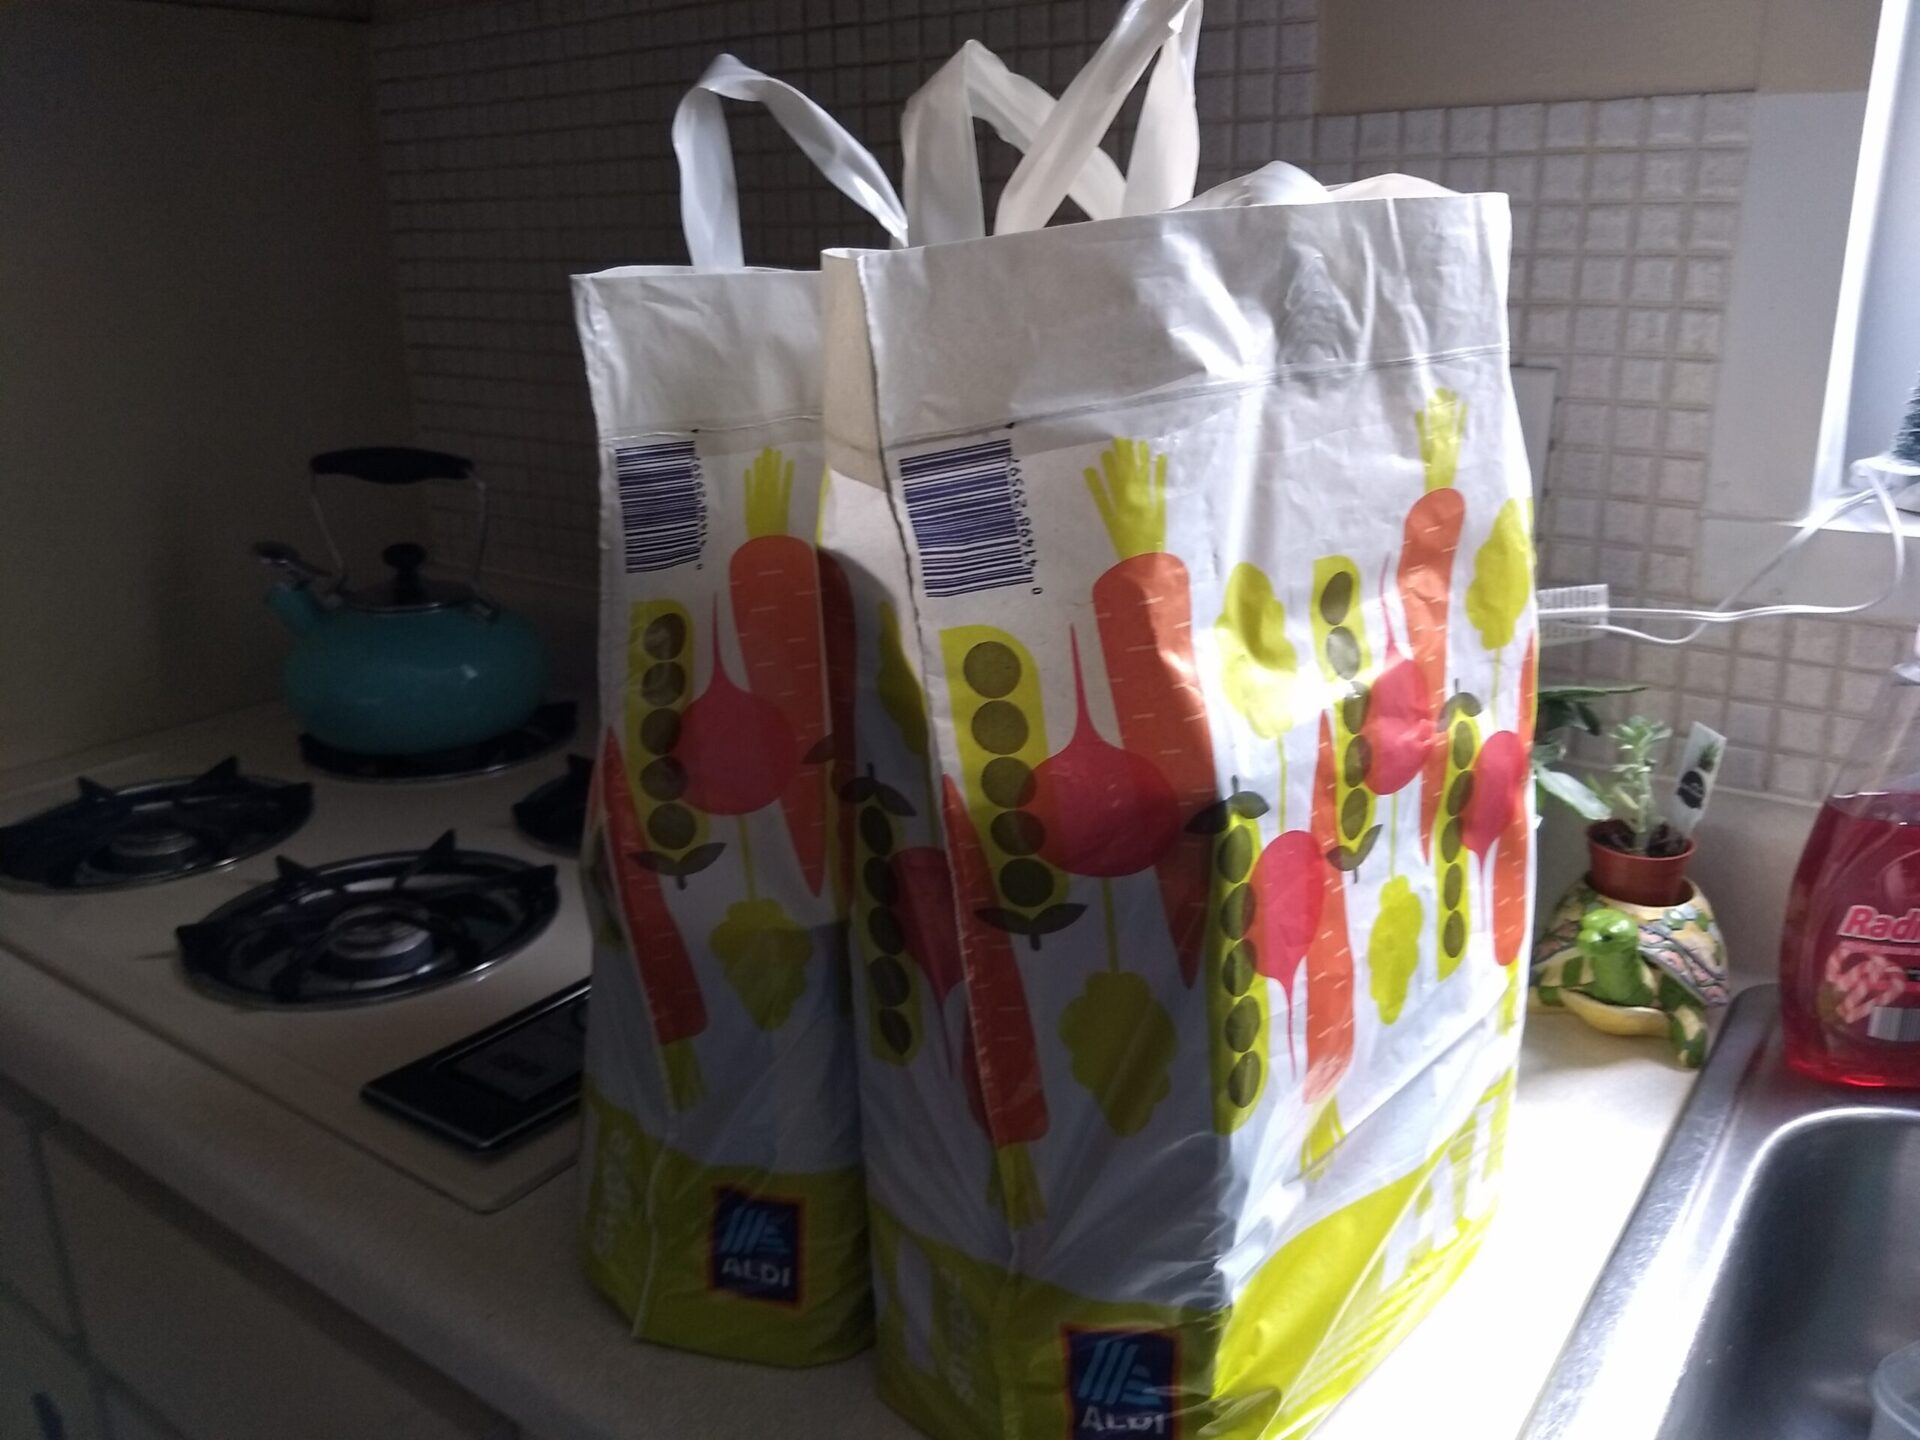 Testing the Aldi Instacart Delivery Service | ALDI REVIEWER